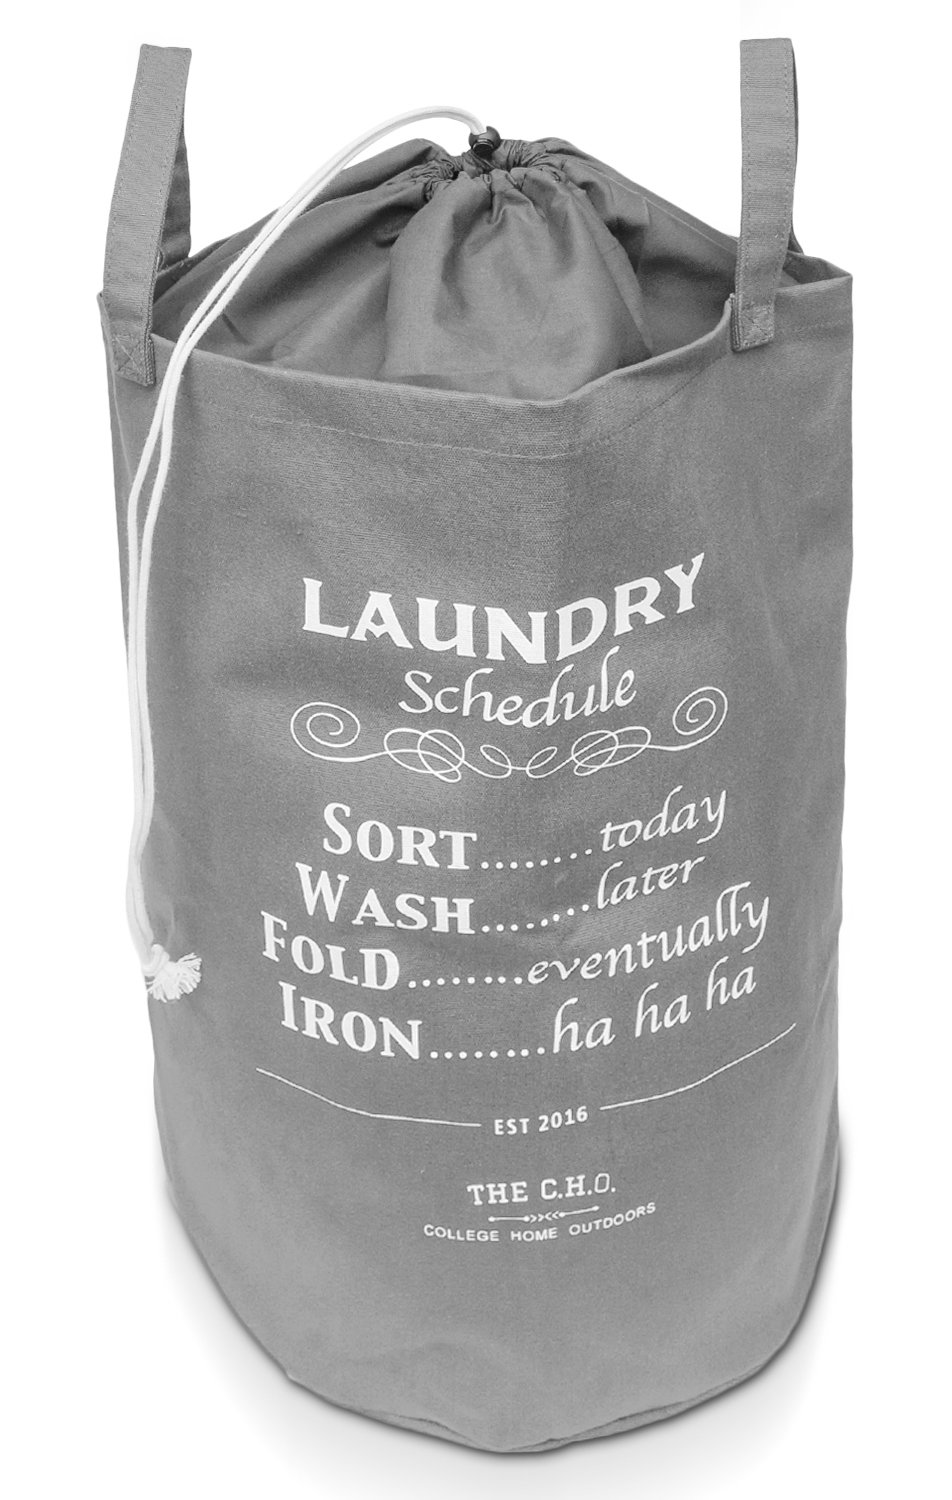 The C.H.O. Hilarious Laundry Hamper | Grey Laundry Schedule | 55 Liters of Heavy Duty Cotton Canvas | 21 Inches Tall x 14 Inches Wide | Collapsible | Drawstring Enclosure for Extra Space | by